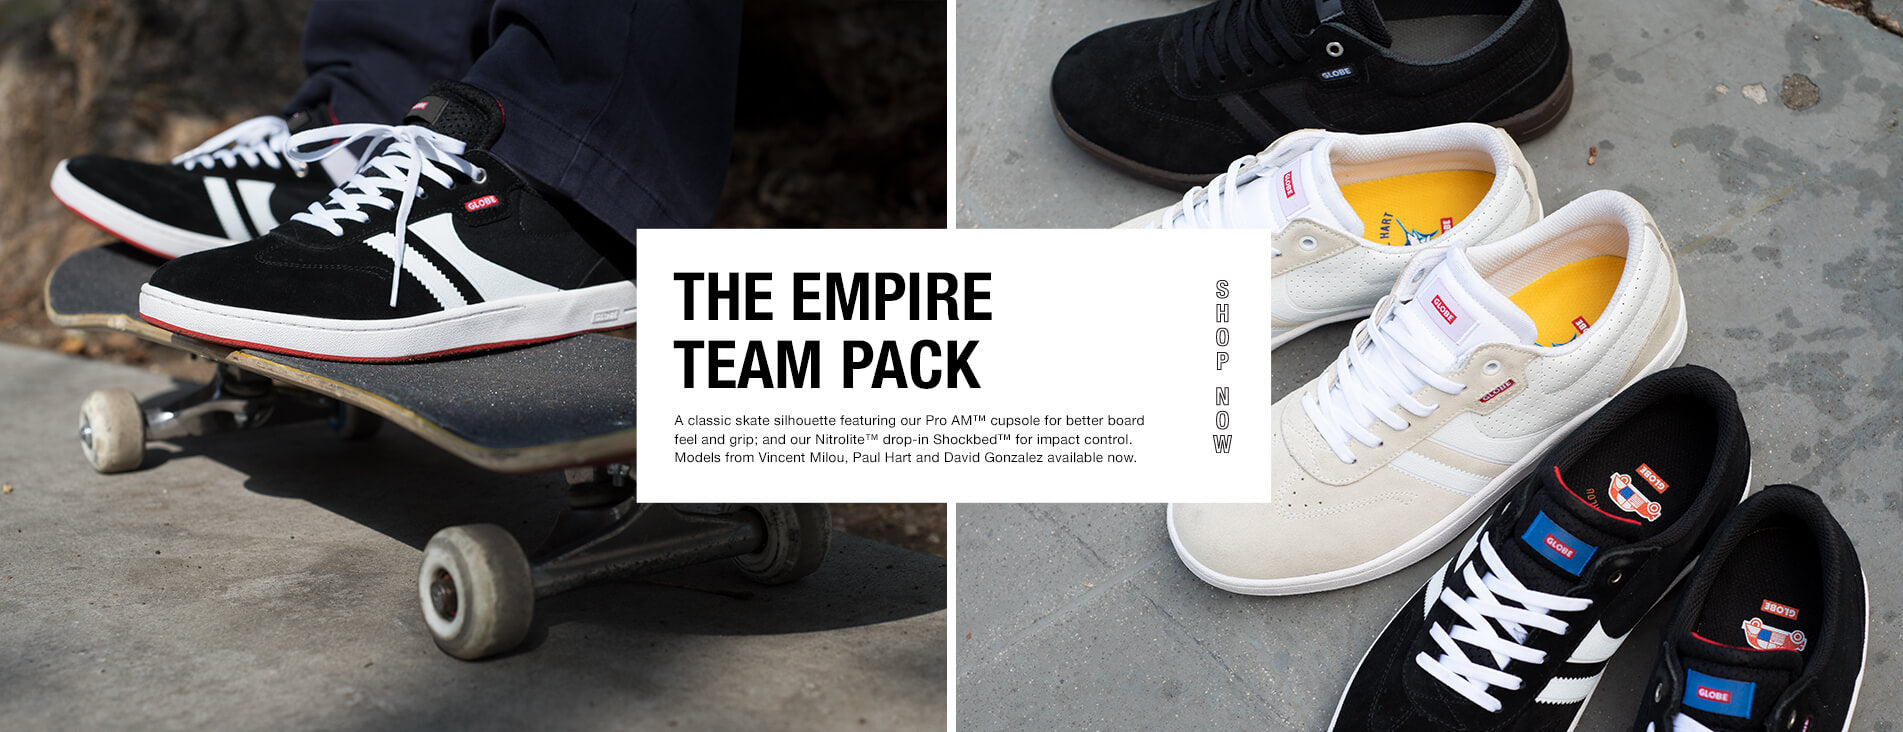 THE EMPIRE TEAM PACK